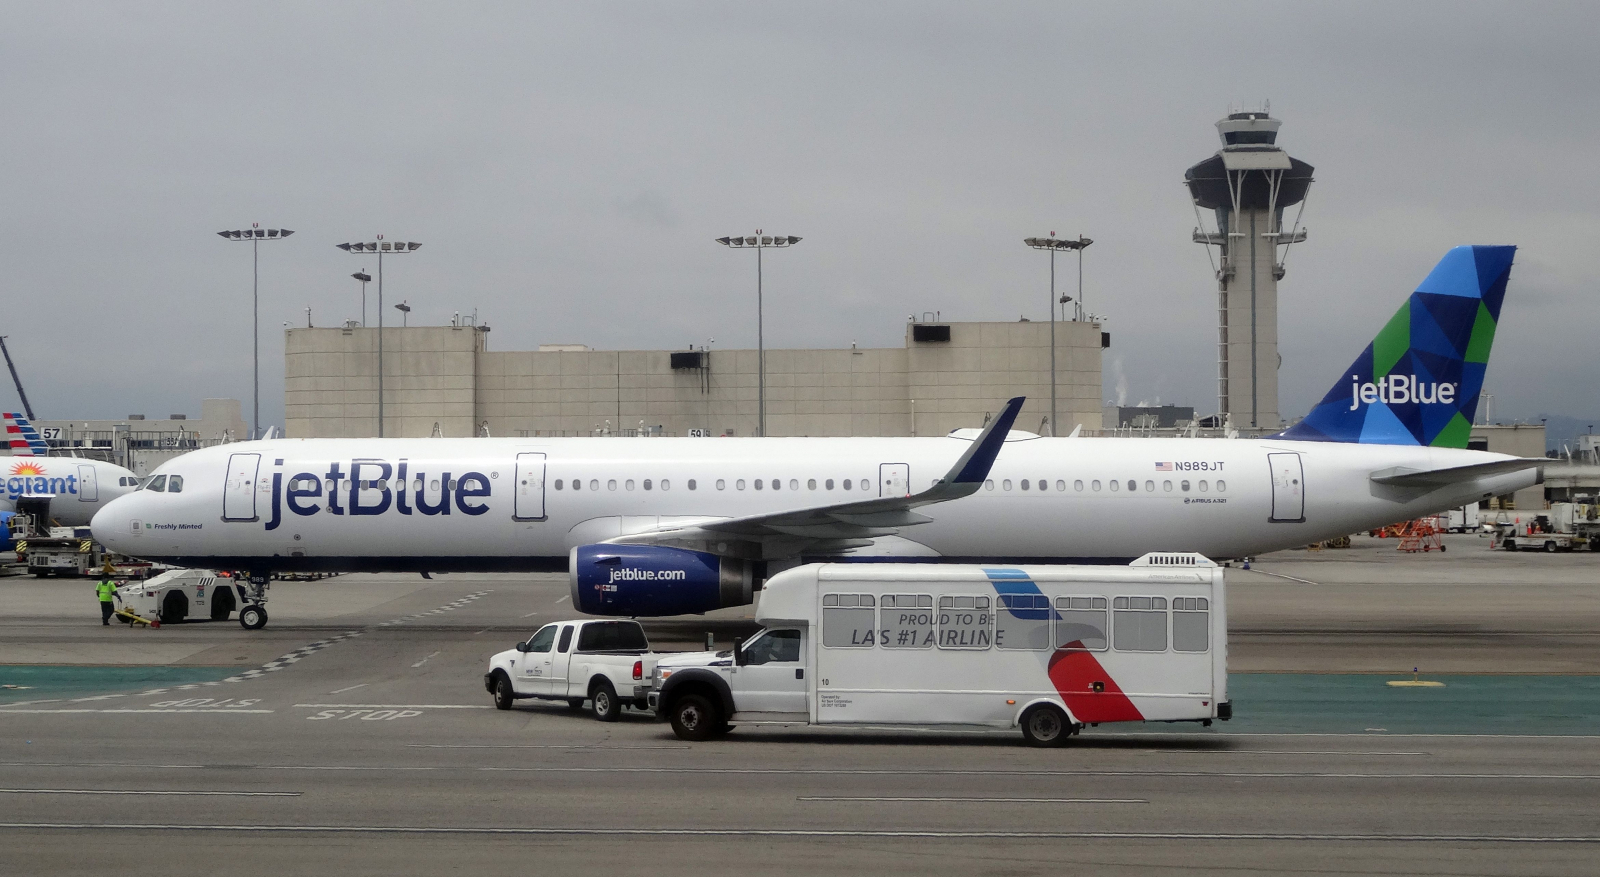 JetBlue Plane Los Angeles